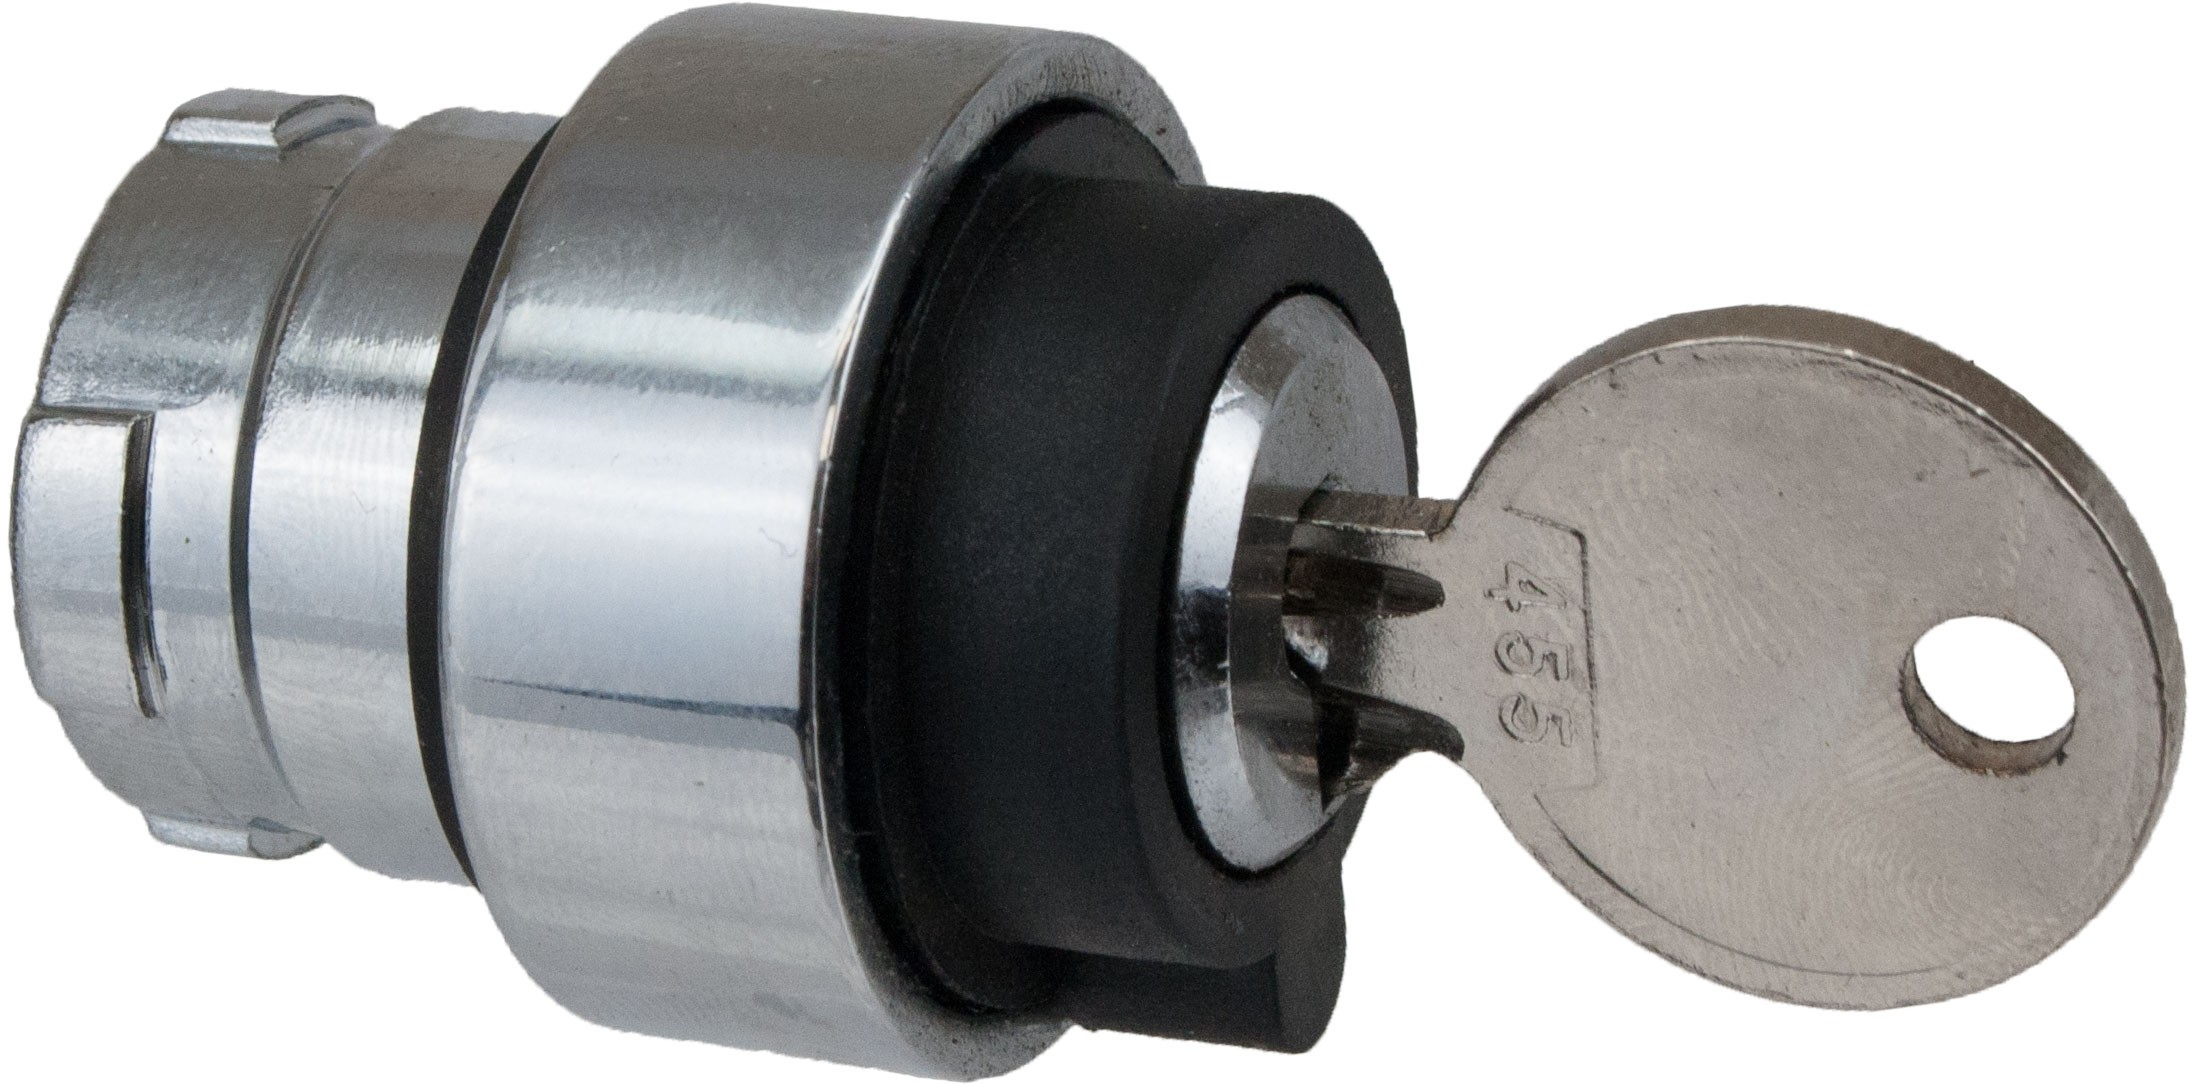 3 Position Key Selector Switch Spring Return Pb Bg7 Elecdirect Cole Hersee Heavy Duty Spdt Momentary Toggle 5502155021bx